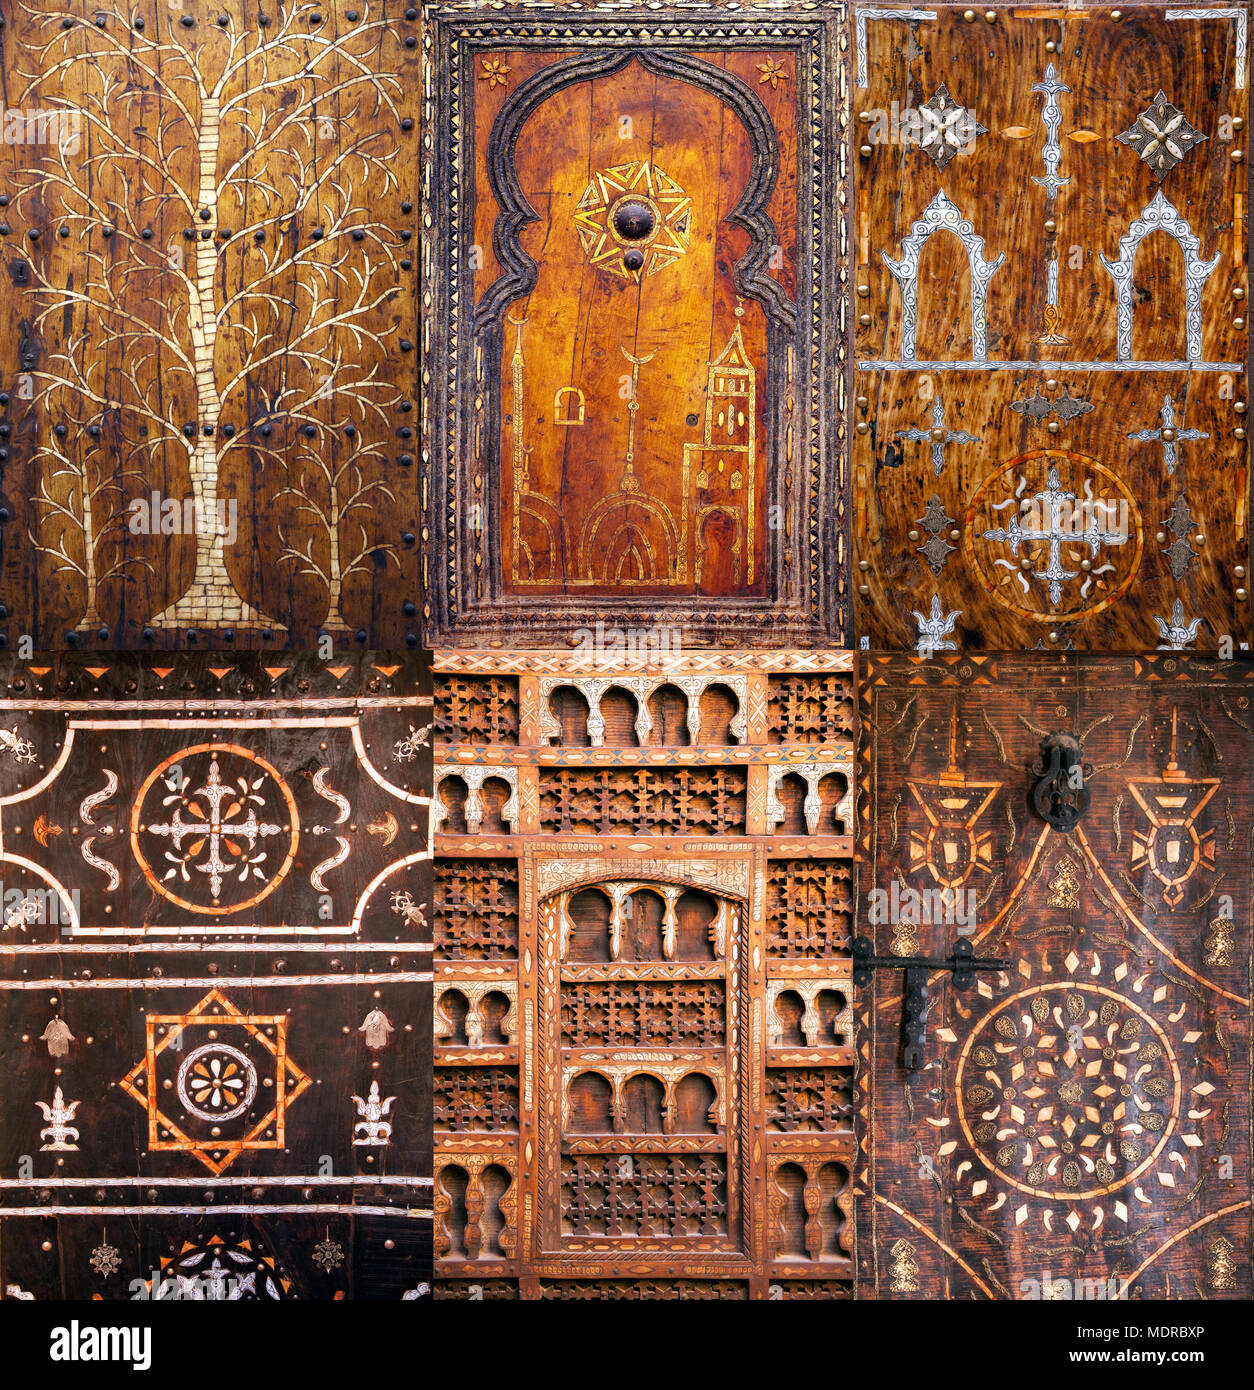 Montage of antique Moroccan doors - Montage Of Antique Moroccan Doors Stock Photo: 180608478 - Alamy